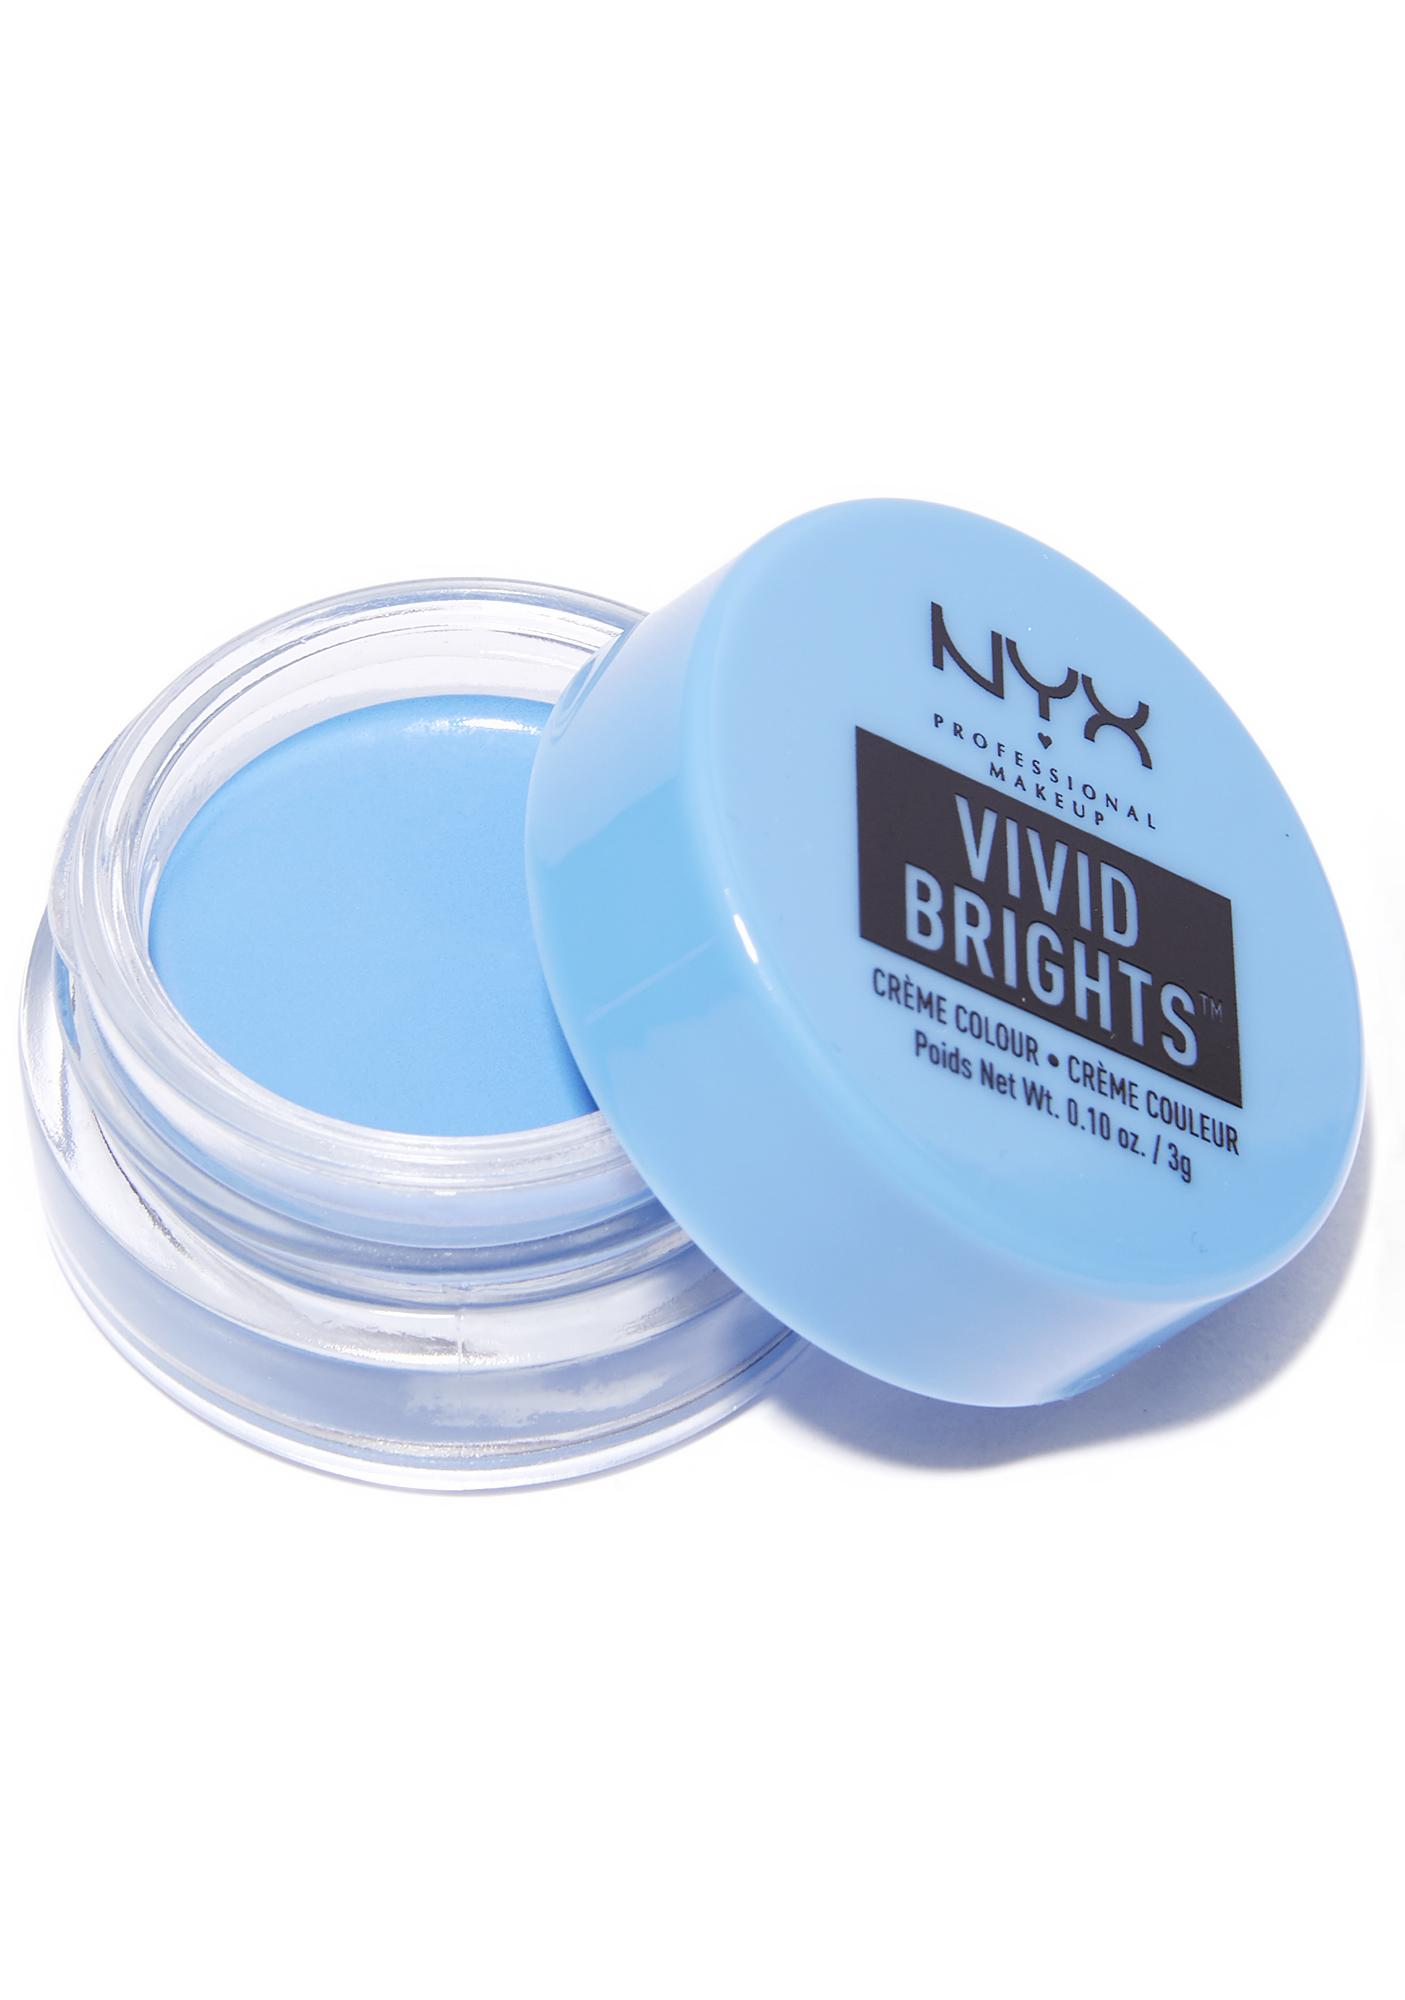 Nyx blueprint vivid brights creme colour dolls kill nyx blueprint vivid brights creme colour malvernweather Images